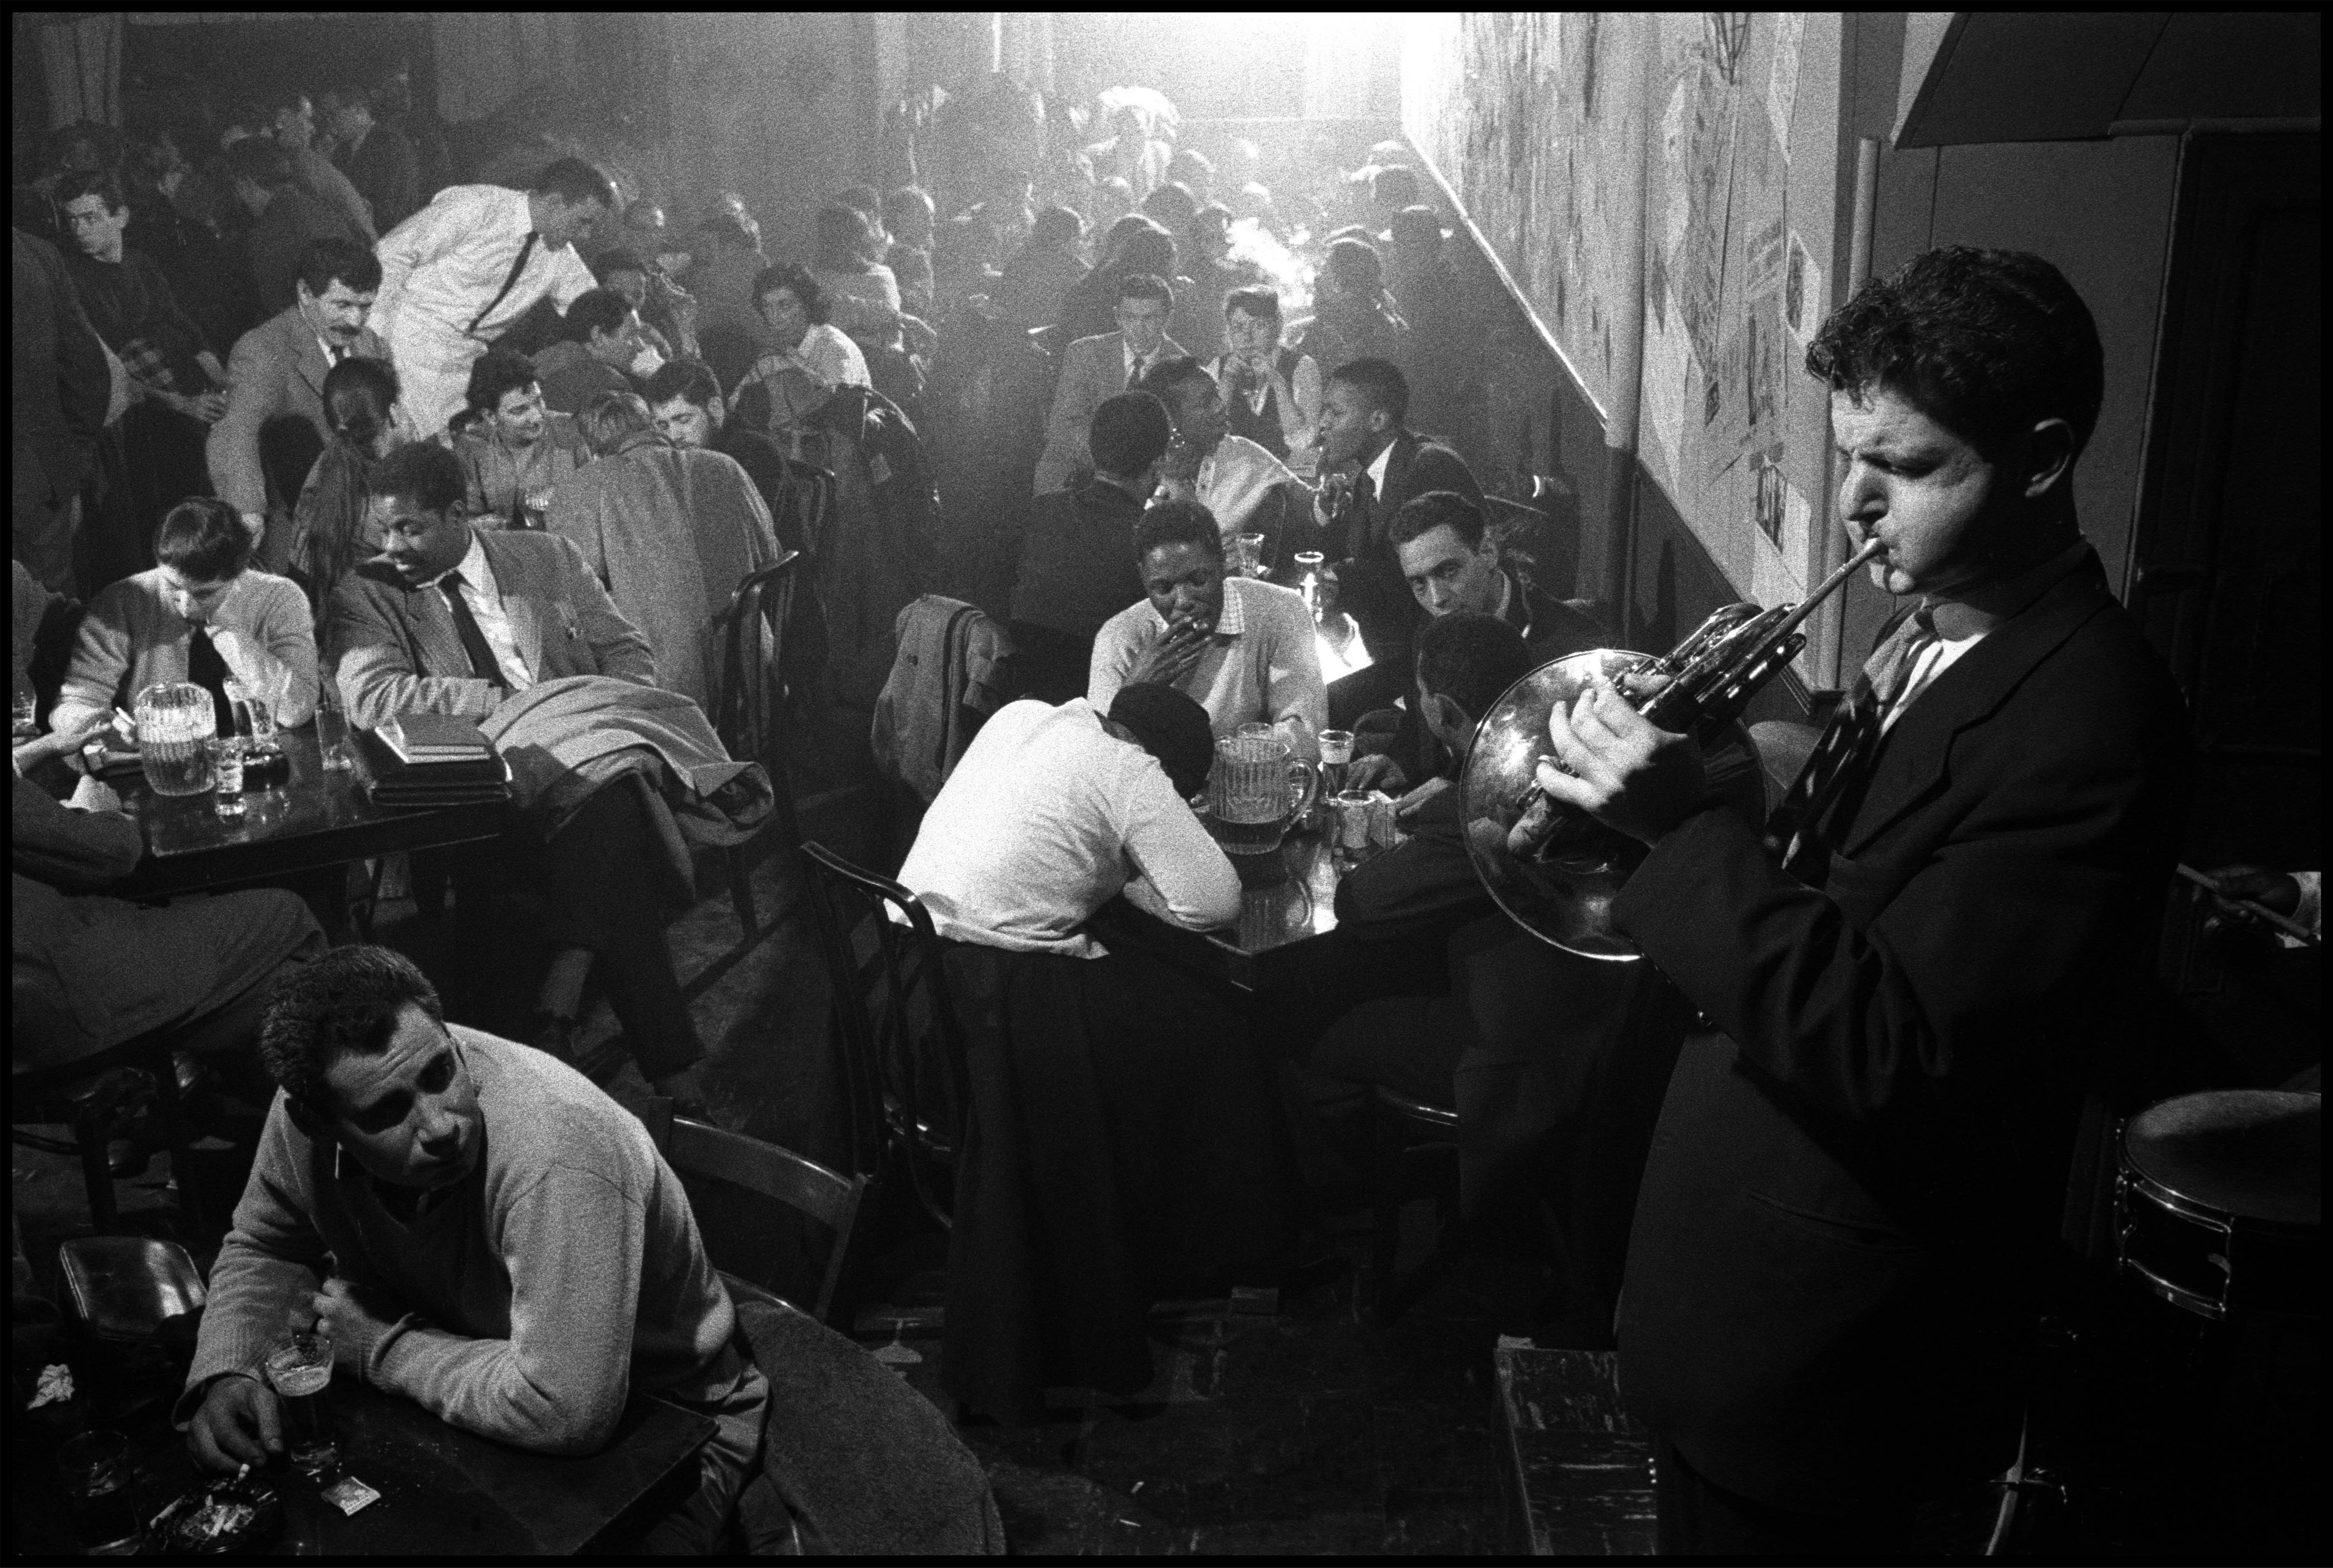 USA. New York City. 1957. David AMRAM entertains at the Five Spot Cafe.